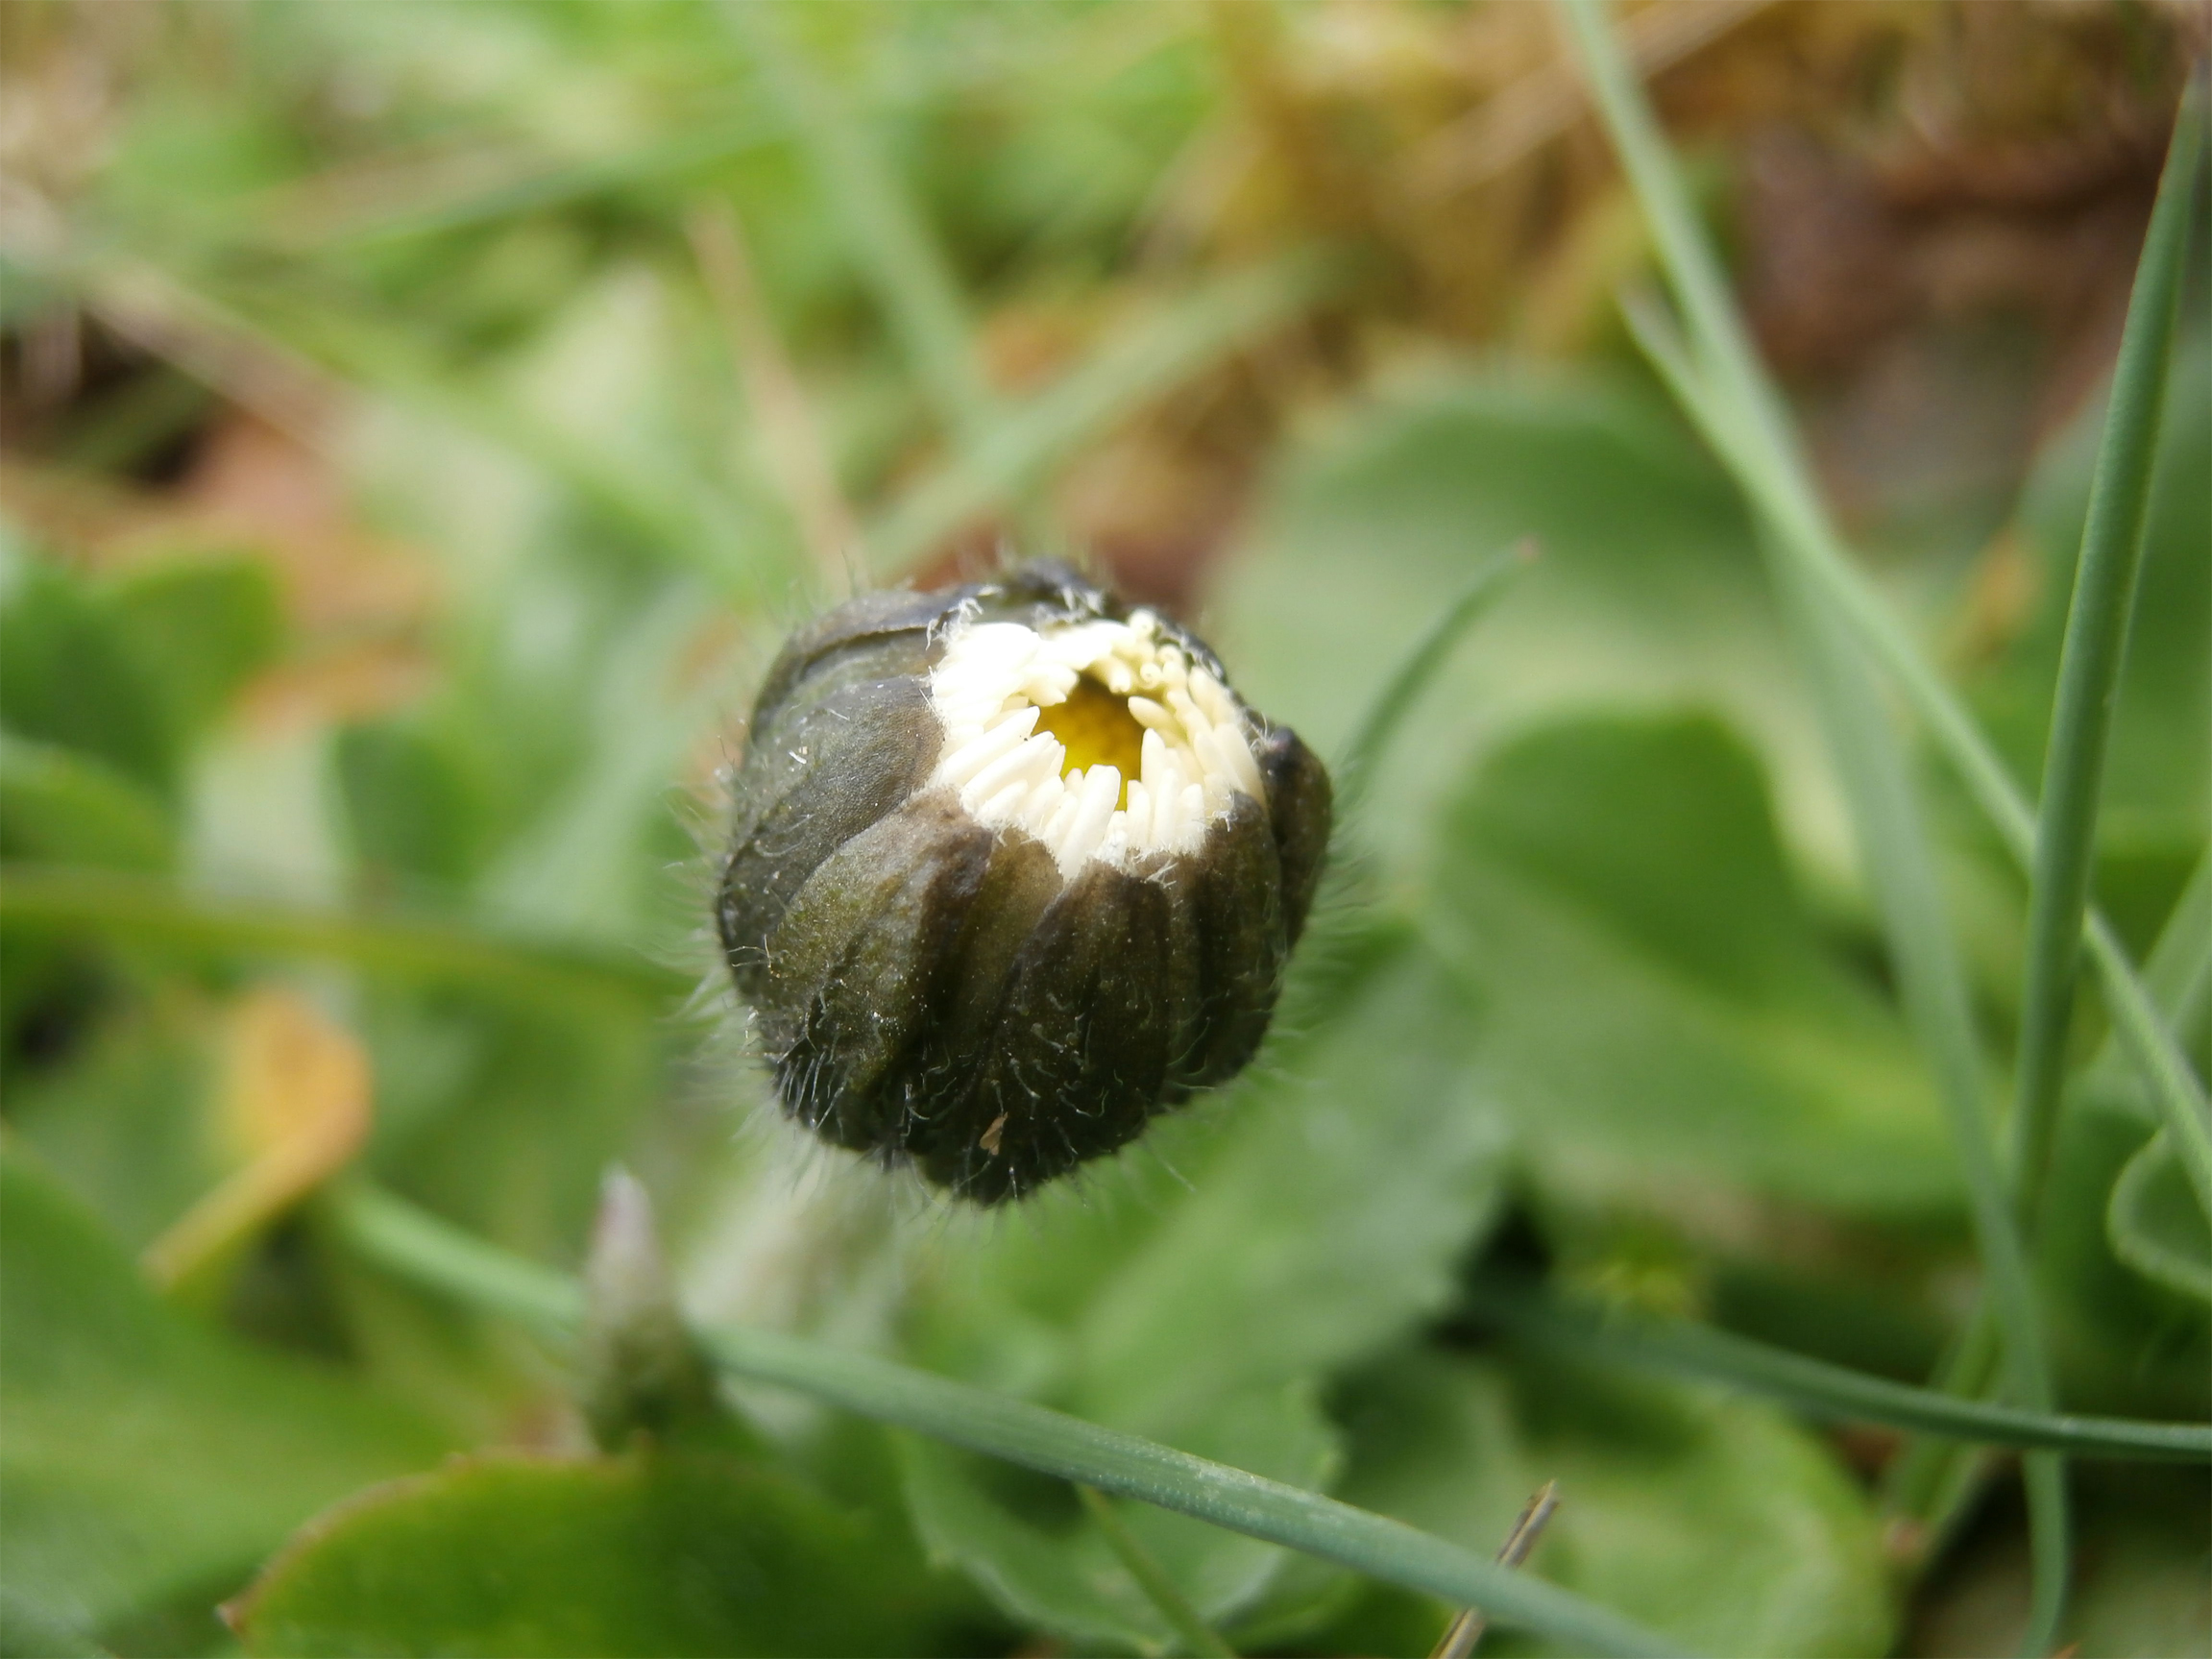 Top-view-of-Daisy-bud